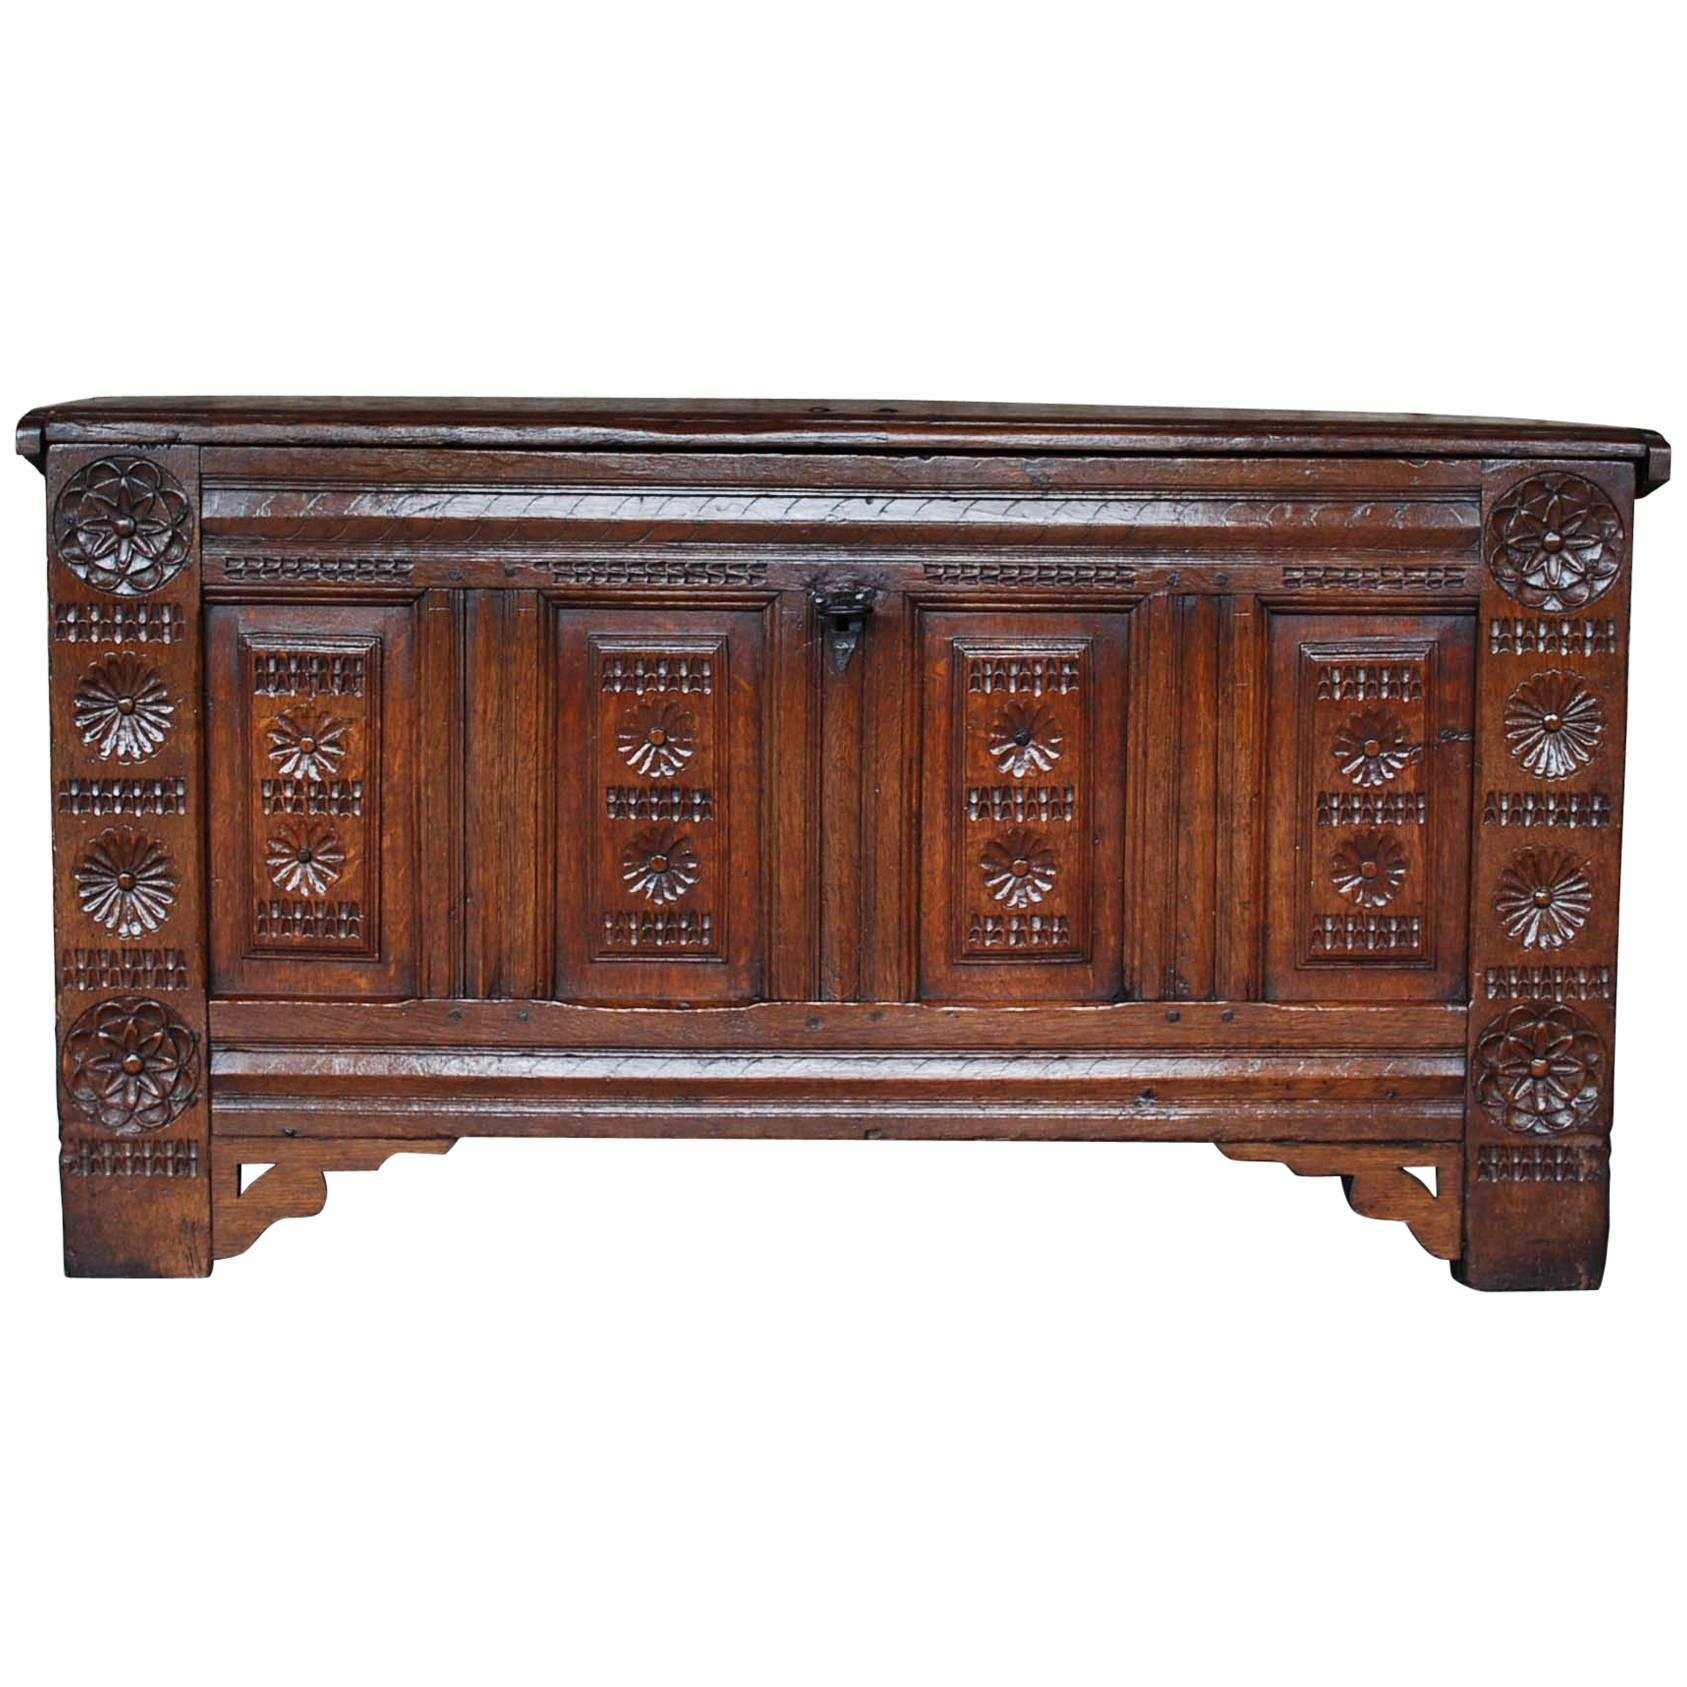 Early 18th Century Carved Oak Dutch Maids Chest